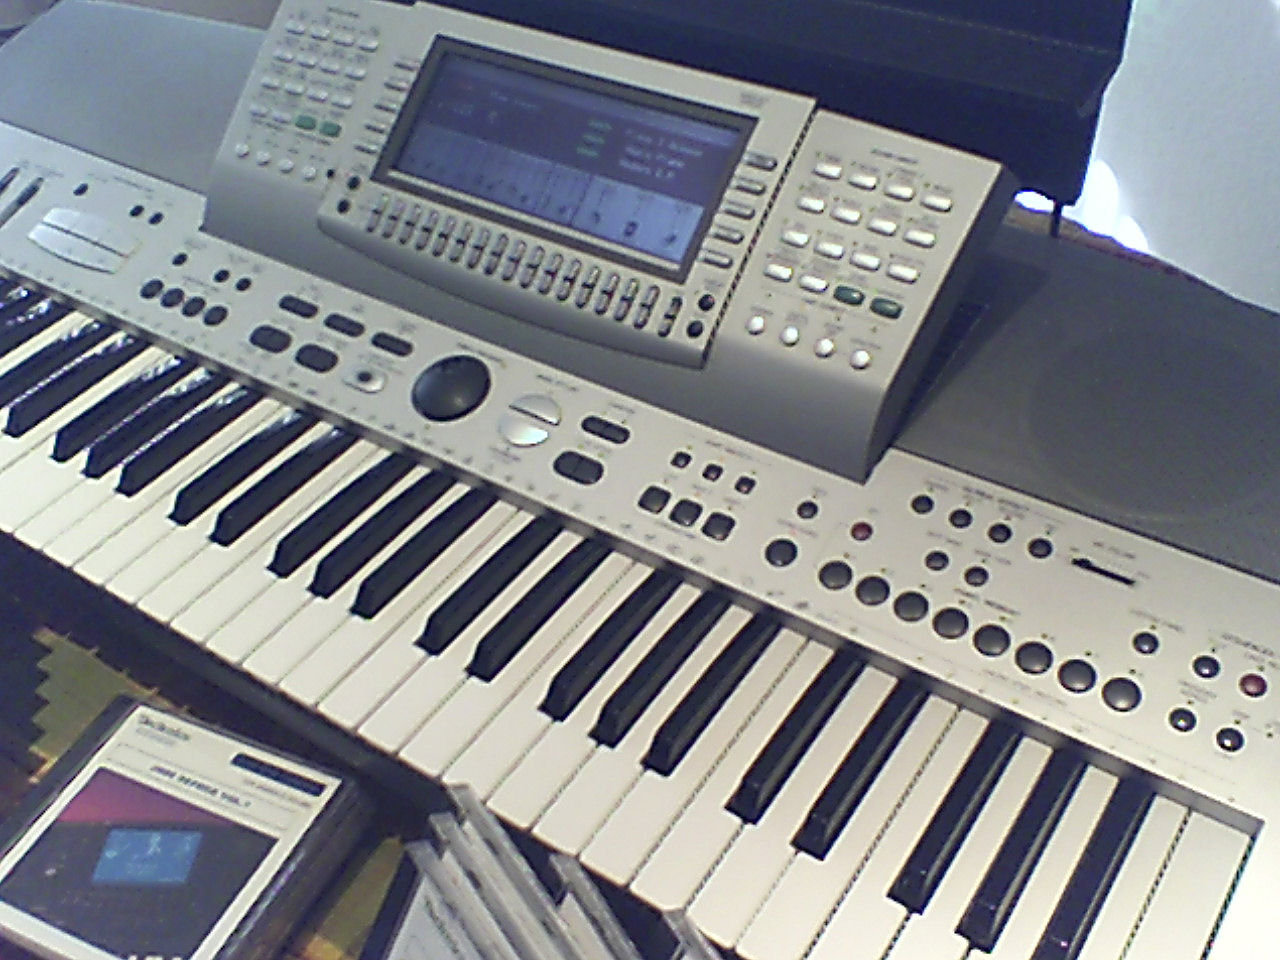 walt tenay keyboards plus yamaha tyros 4 pre owned keyboards. Black Bedroom Furniture Sets. Home Design Ideas